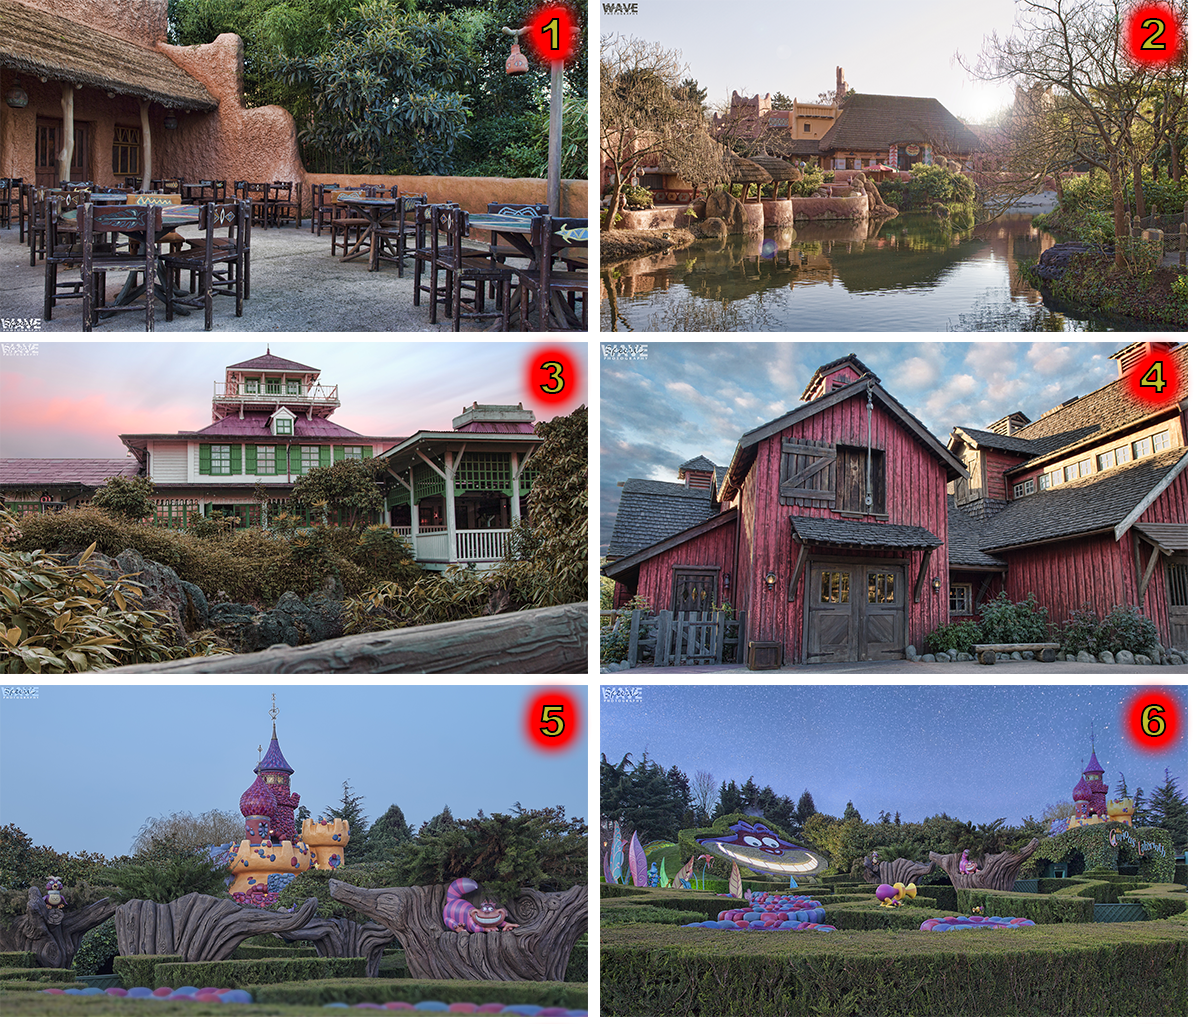 Photos de Disneyland Paris en HDR (High Dynamic Range) ! 170208105828144543